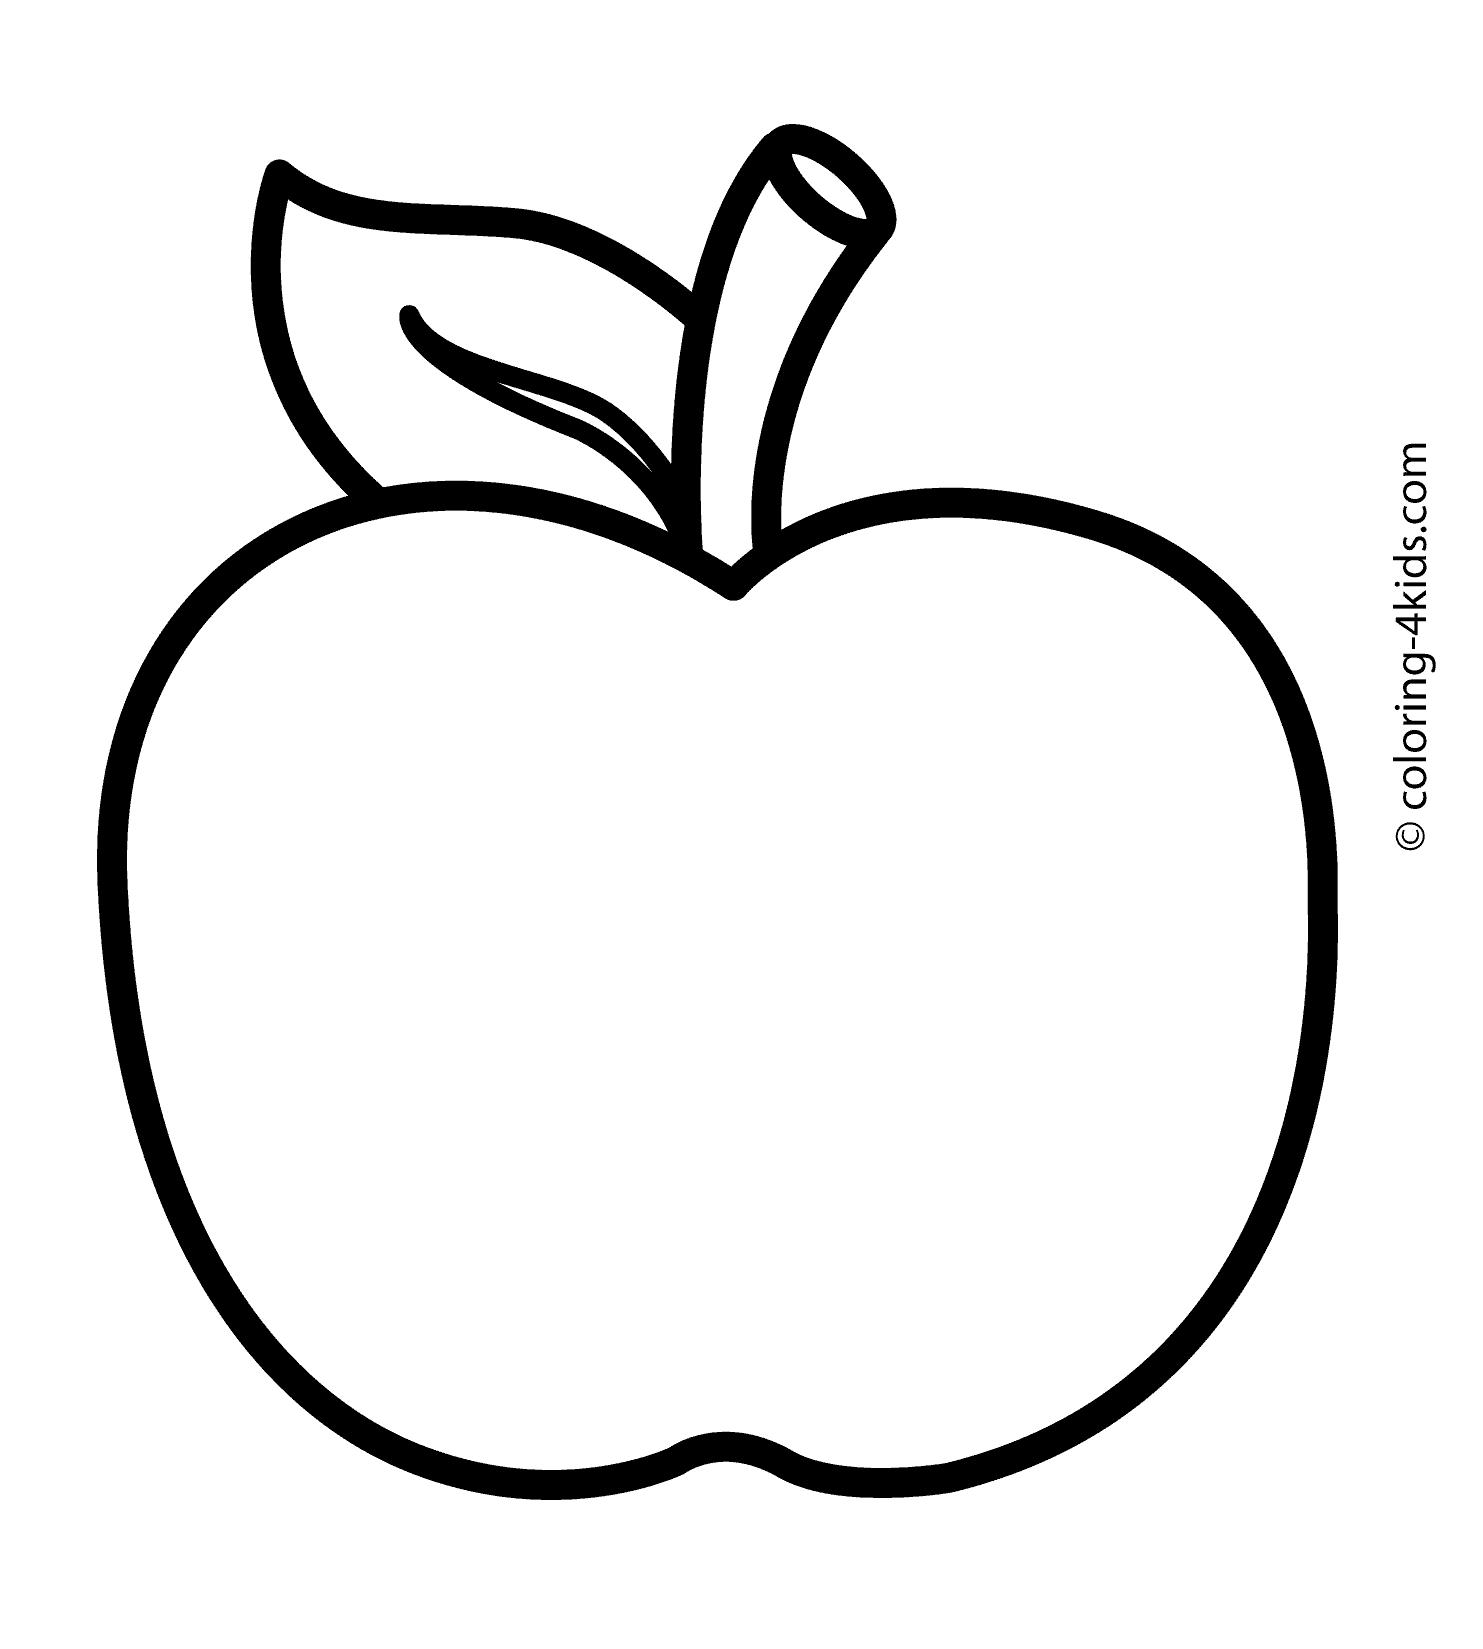 printable apple pictures 7 best images of printable apple template preschool free apple printable pictures